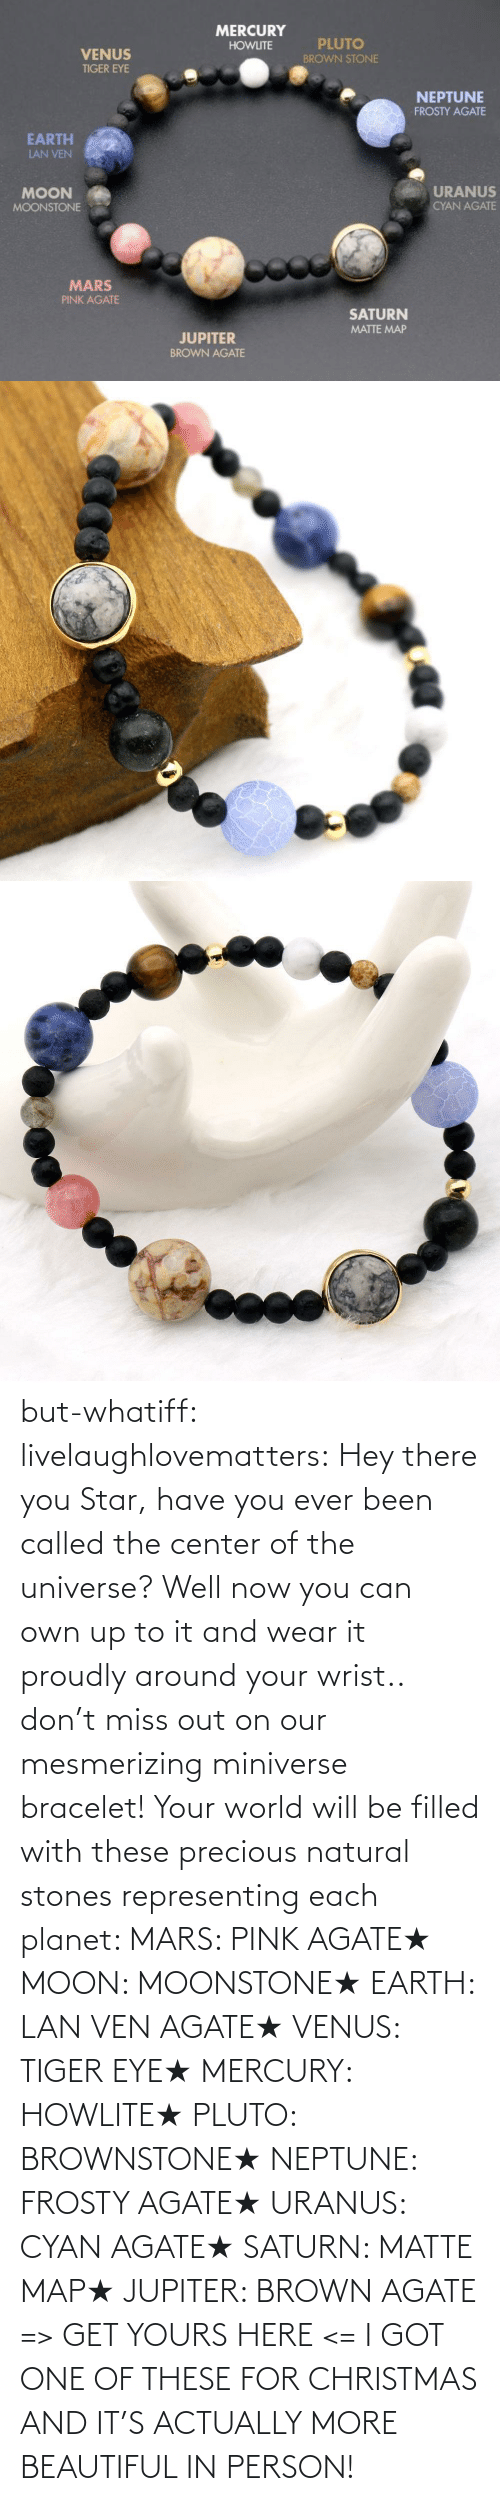 These: but-whatiff:  livelaughlovematters:  Hey there you Star, have you ever been called the center of the universe? Well now you can own up to it and wear it proudly around your wrist.. don't miss out on our mesmerizing miniverse bracelet! Your world will be filled with these precious natural stones representing each planet:  MARS: PINK AGATE★ MOON: MOONSTONE★ EARTH: LAN VEN AGATE★ VENUS: TIGER EYE★ MERCURY: HOWLITE★ PLUTO: BROWNSTONE★ NEPTUNE: FROSTY AGATE★ URANUS: CYAN AGATE★ SATURN: MATTE MAP★ JUPITER: BROWN AGATE => GET YOURS HERE <=  I GOT ONE OF THESE FOR CHRISTMAS AND IT'S ACTUALLY MORE BEAUTIFUL IN PERSON!